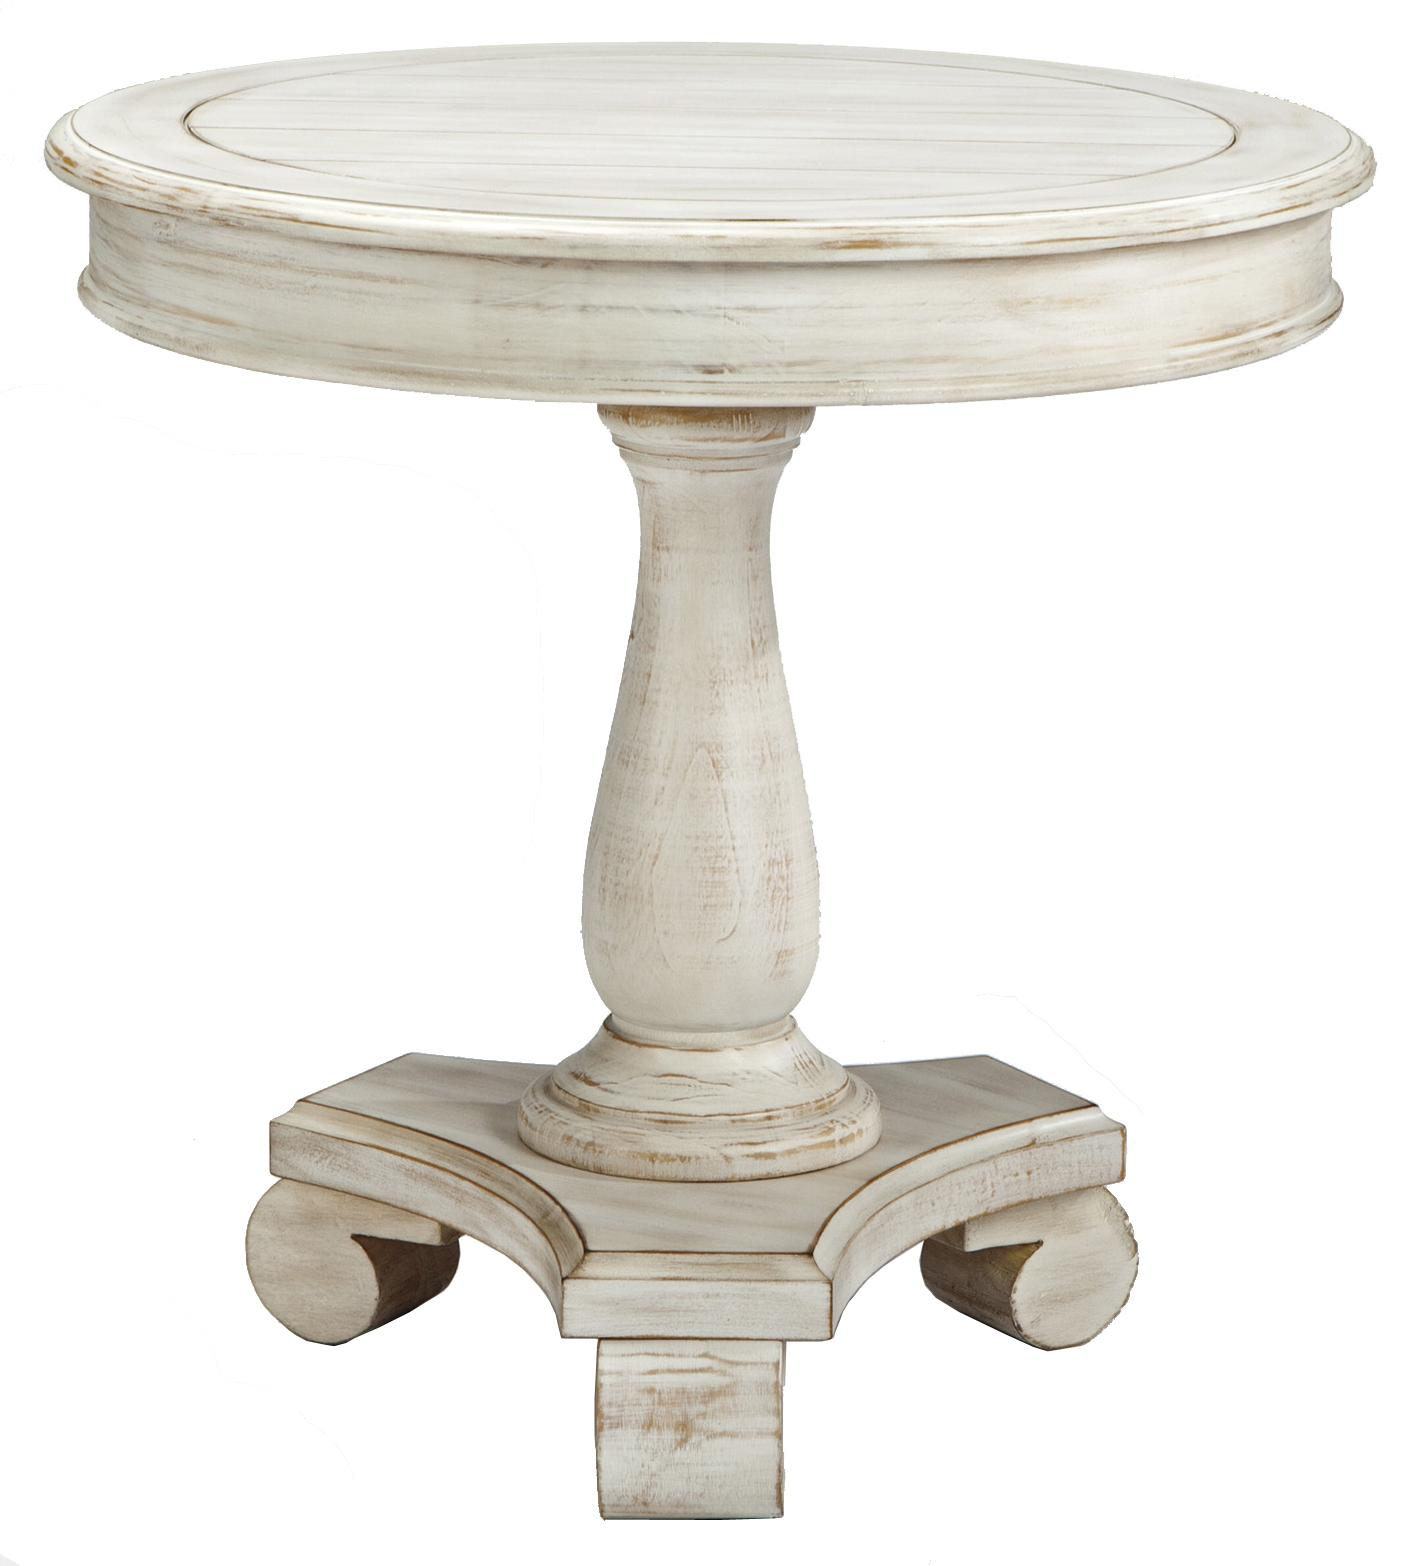 Amazing Round Accent Table With Turned Pedestal Base